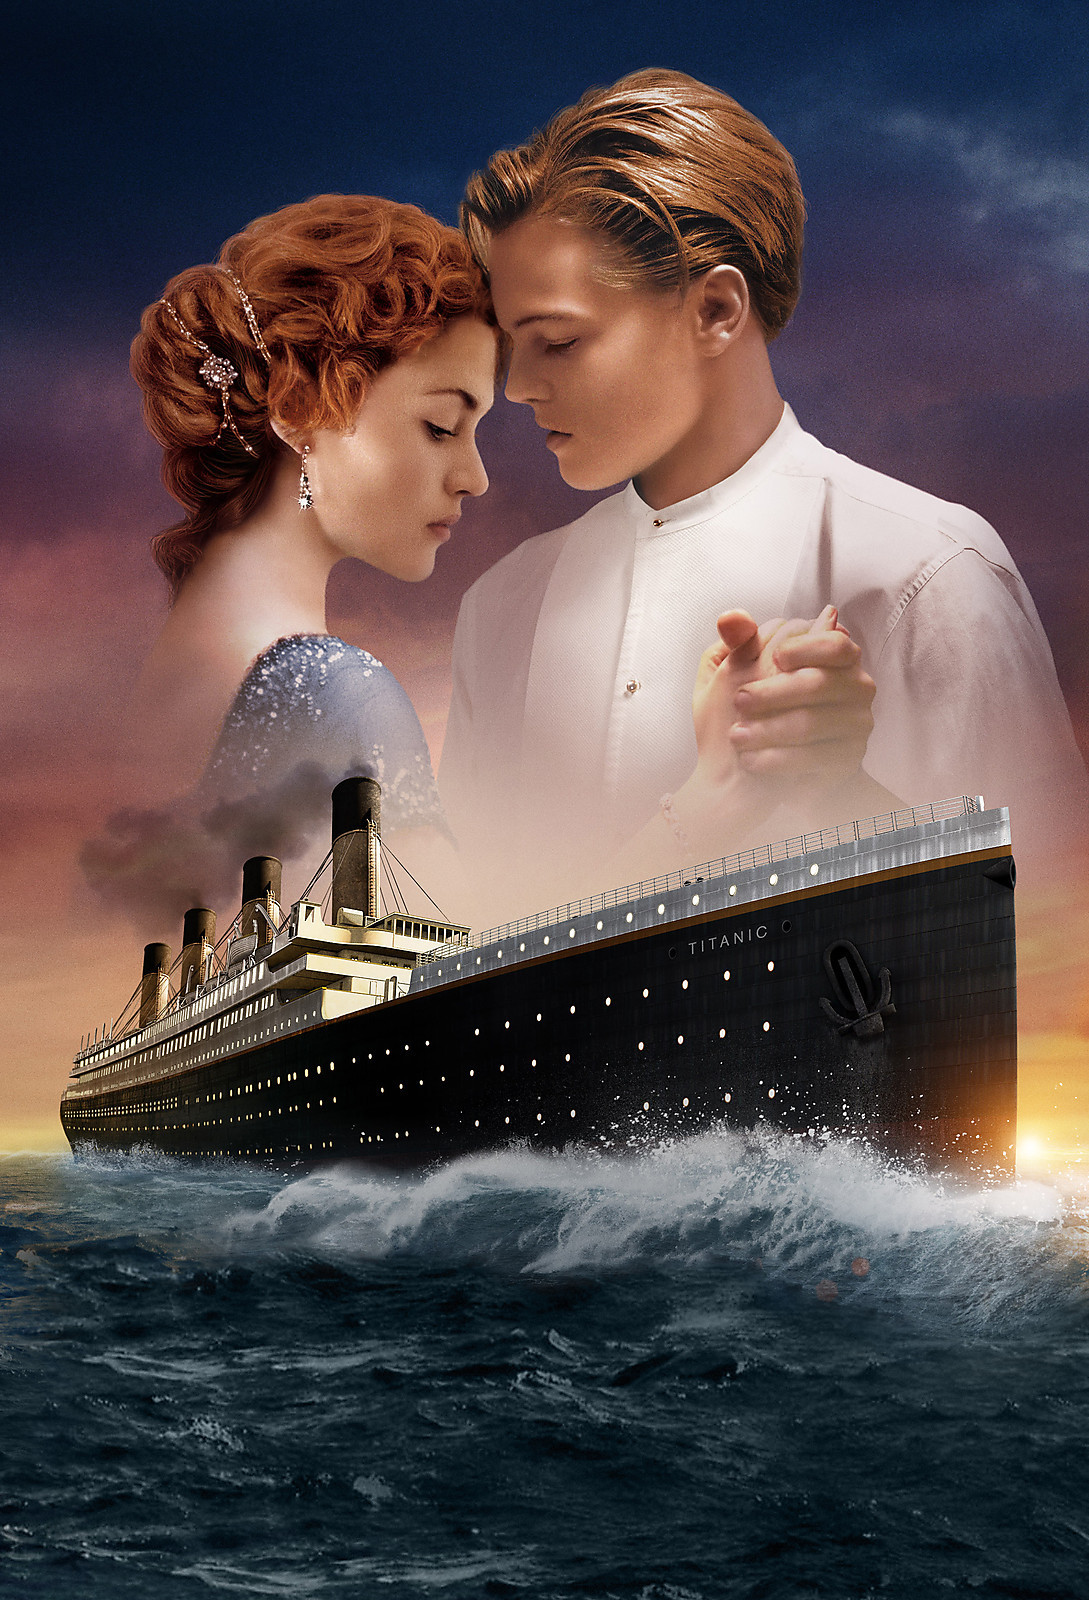 titanic wallpapers high quality | download free